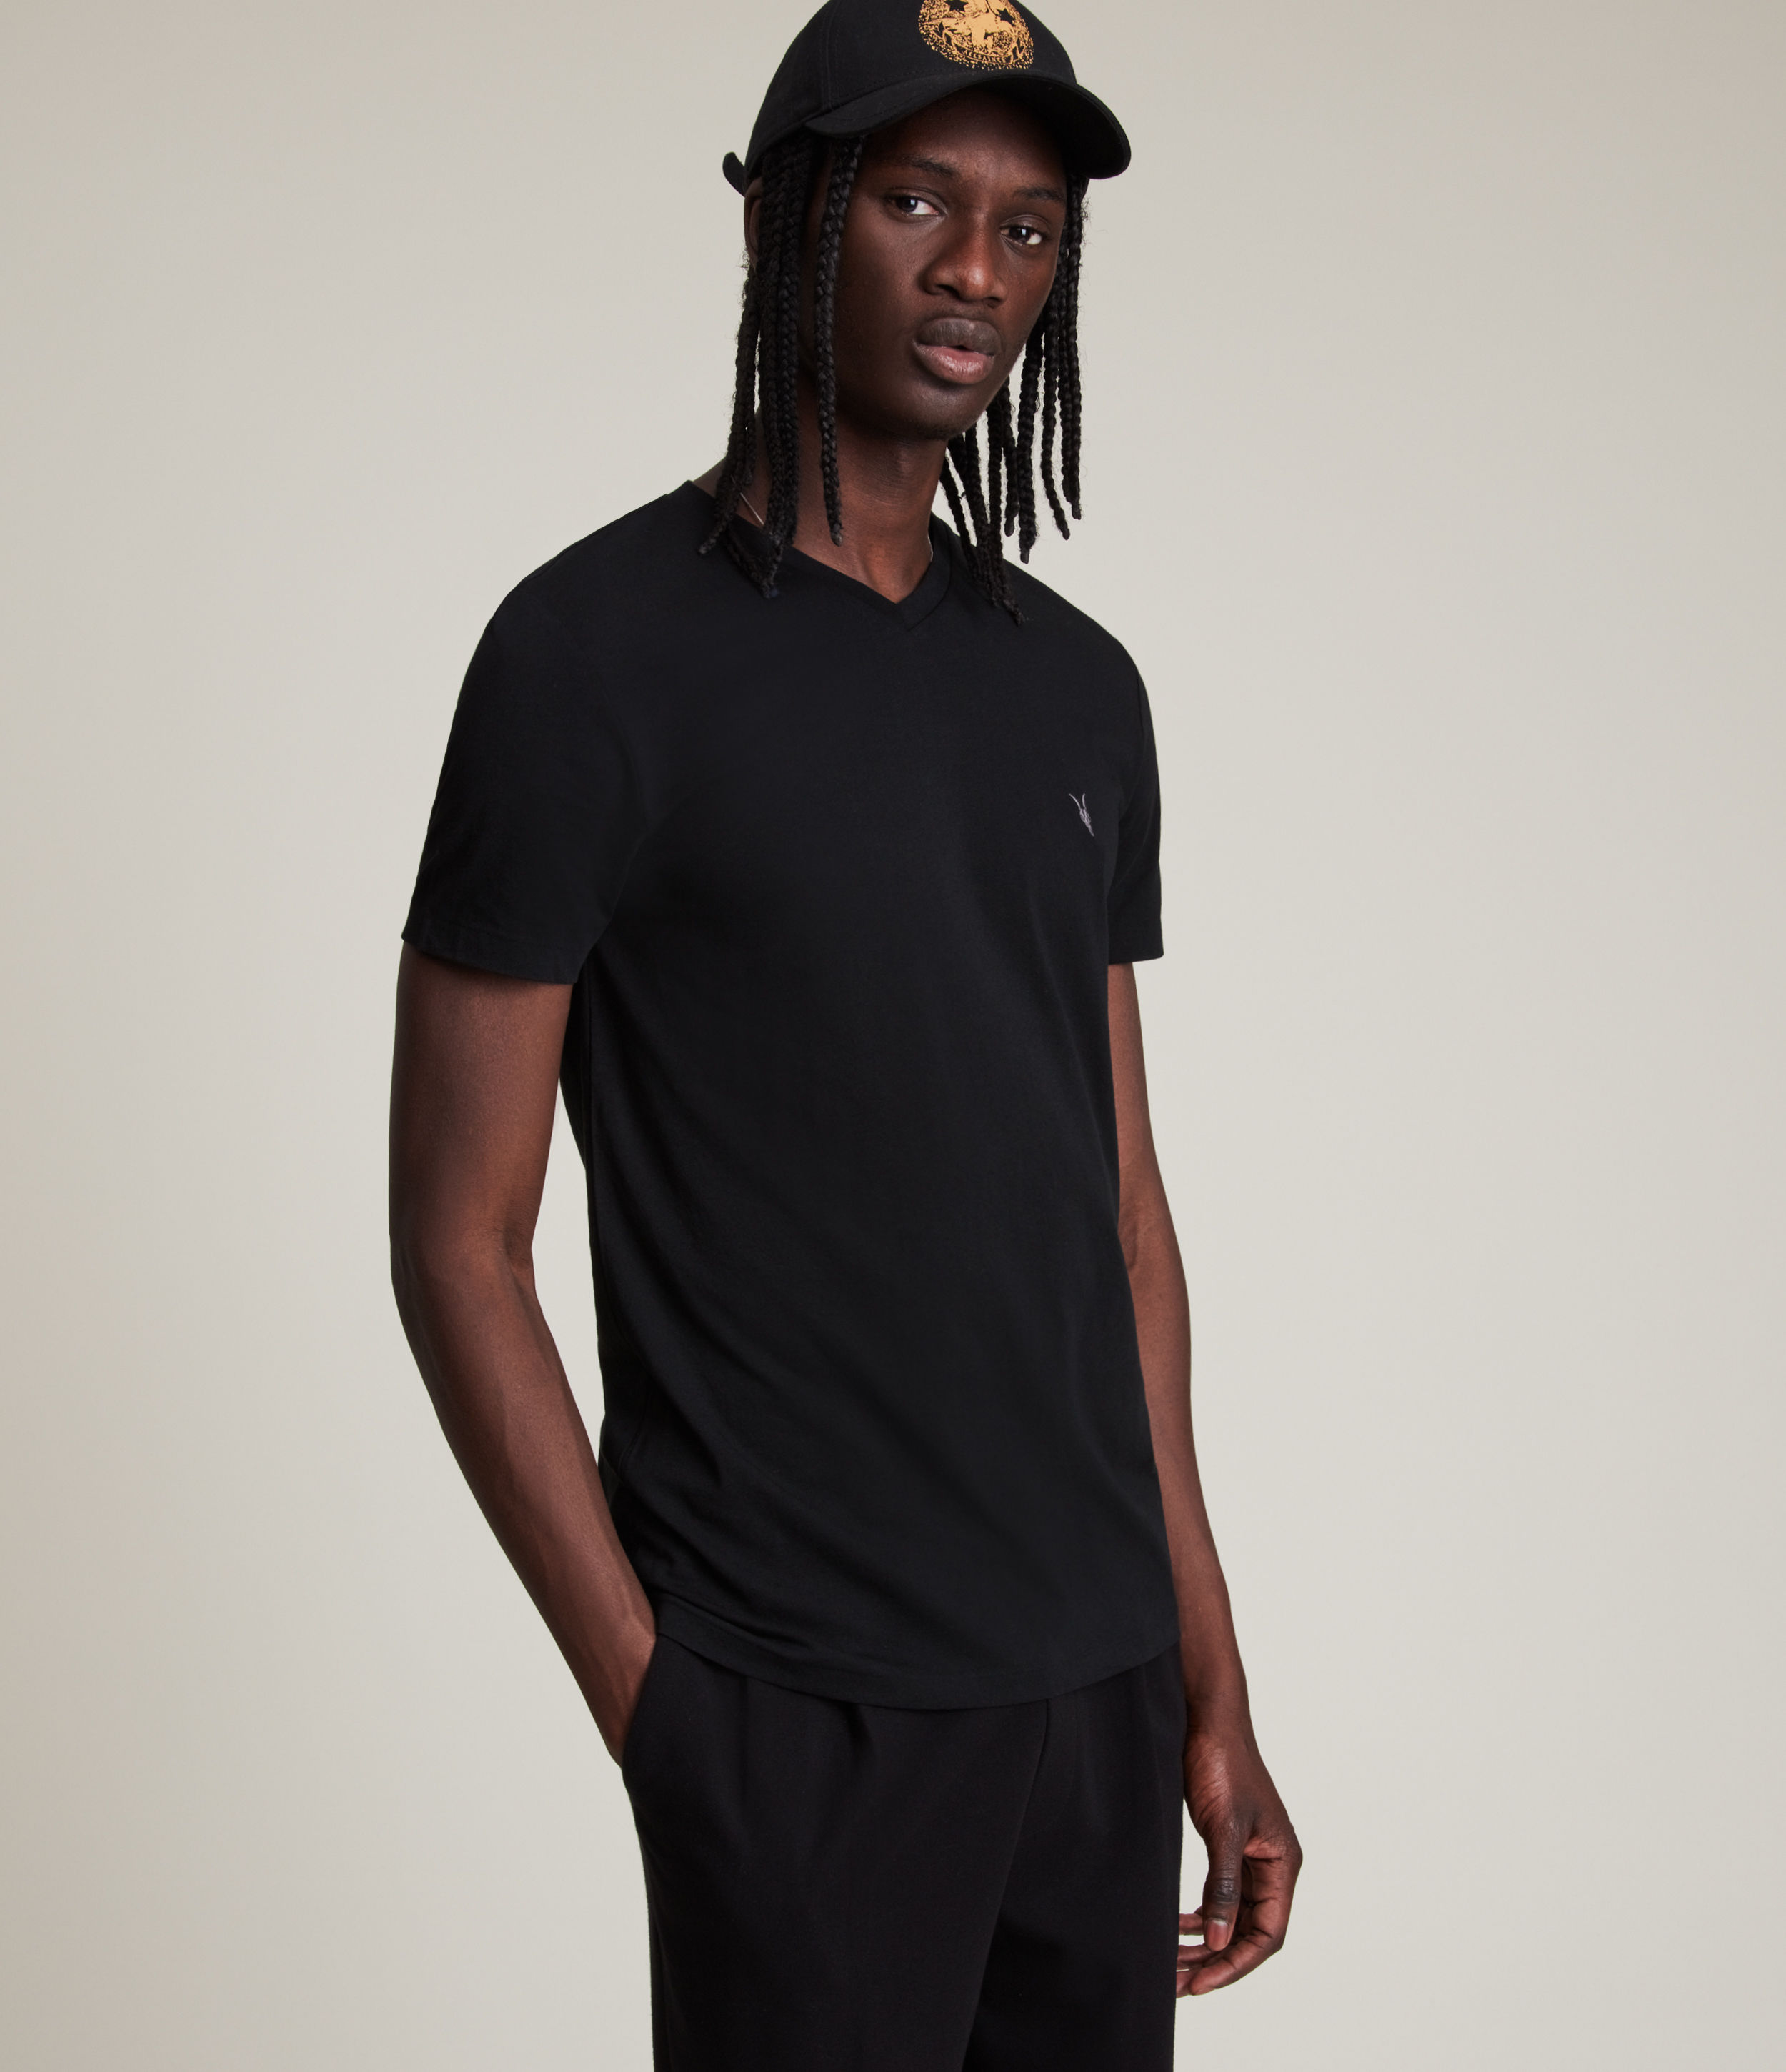 AllSaints Men's Cotton Lightweight Tonic V-Neck T-Shirt, Black, Size: M